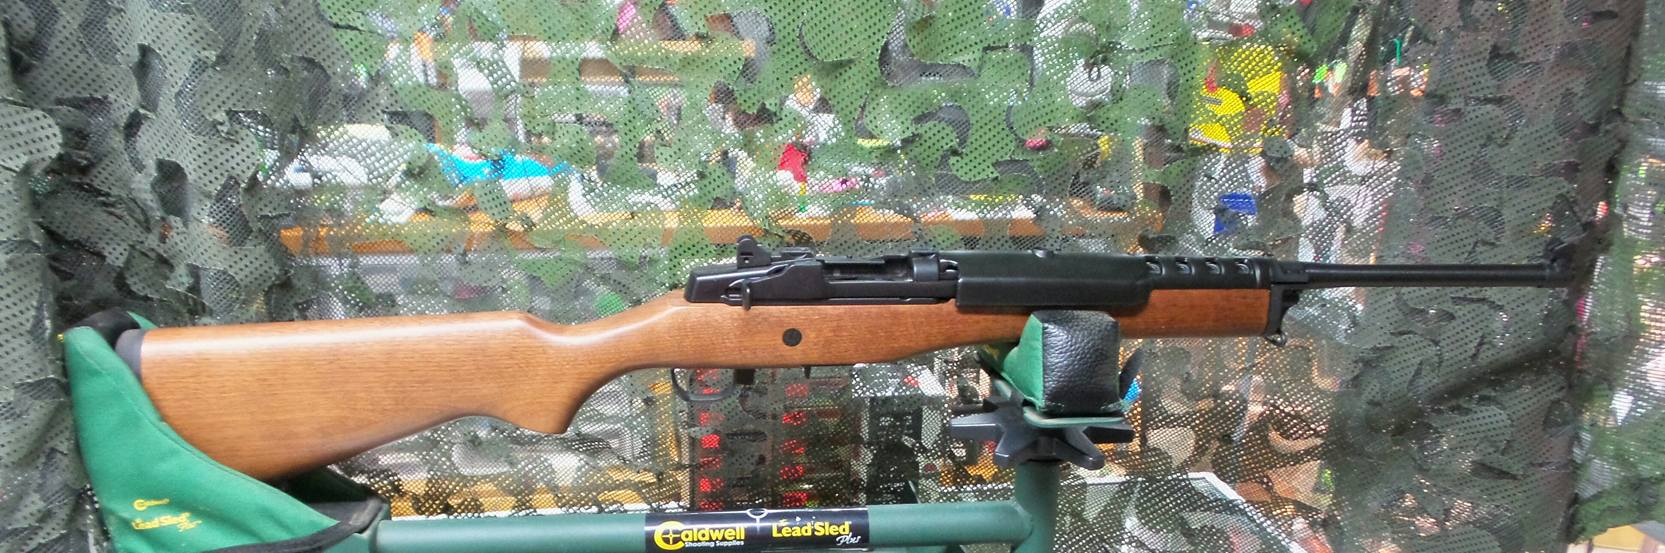 AH 15-1267 ULGP USED Ruger Mini 14 5-1665×553.56 Semiautomatic Rifle $695